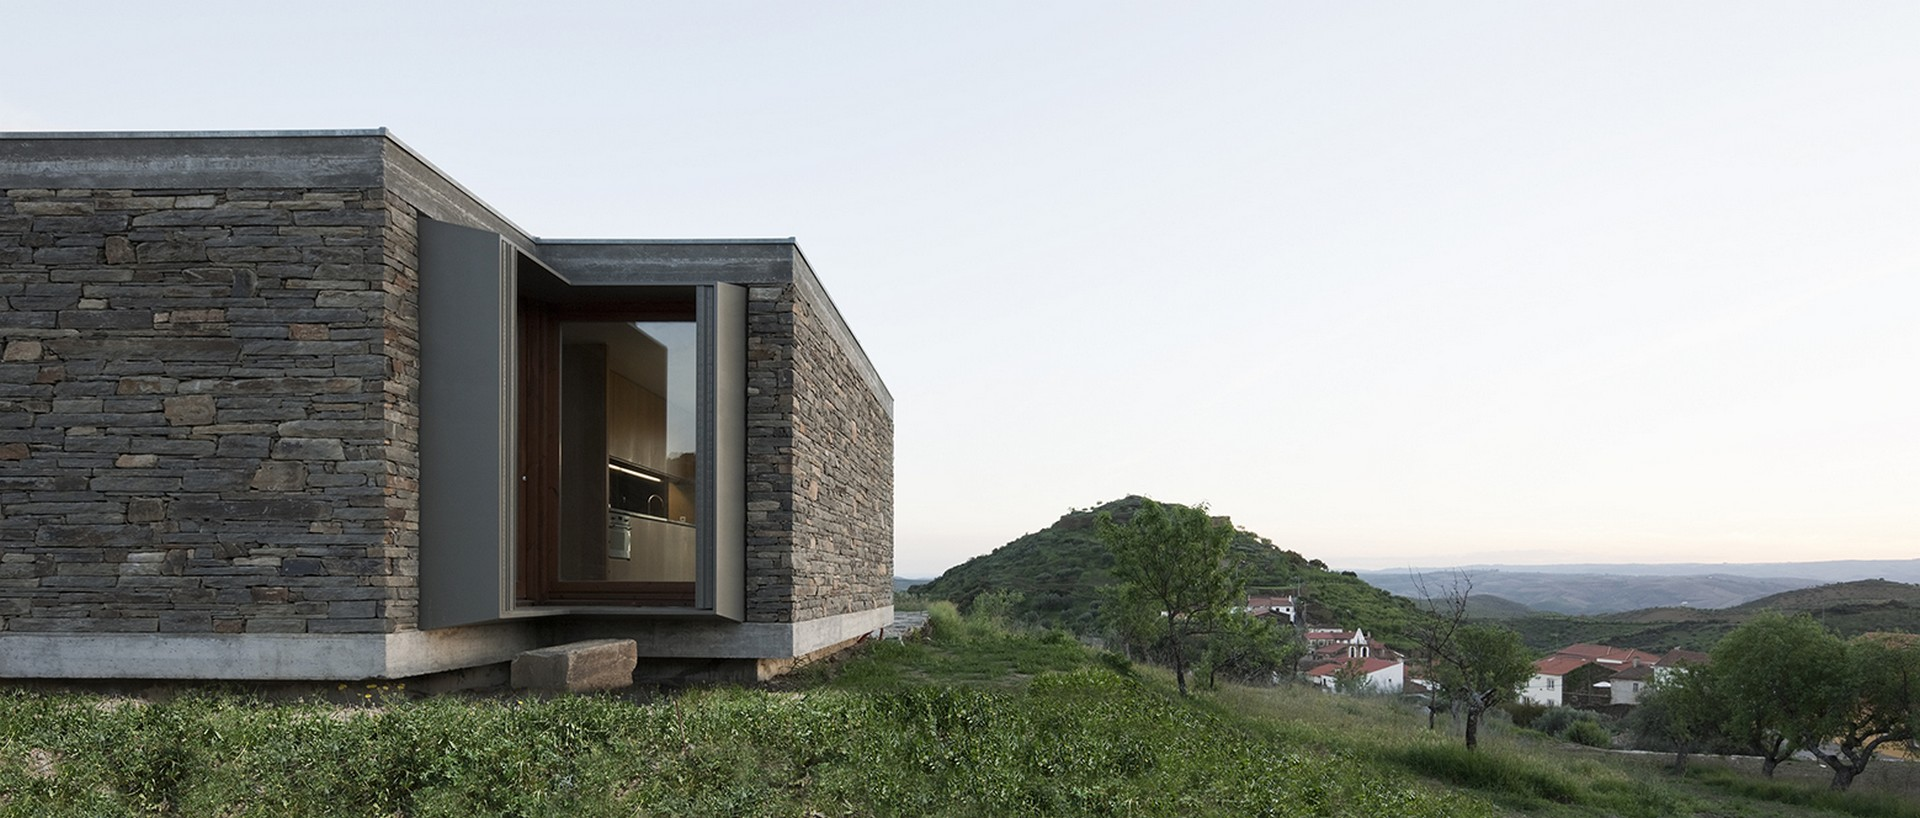 Best Architecture Projects 6 best architecture projects Best Architecture Projects: the House by Correia/Ragazzi Arquitectos Best Architecture Projects 6